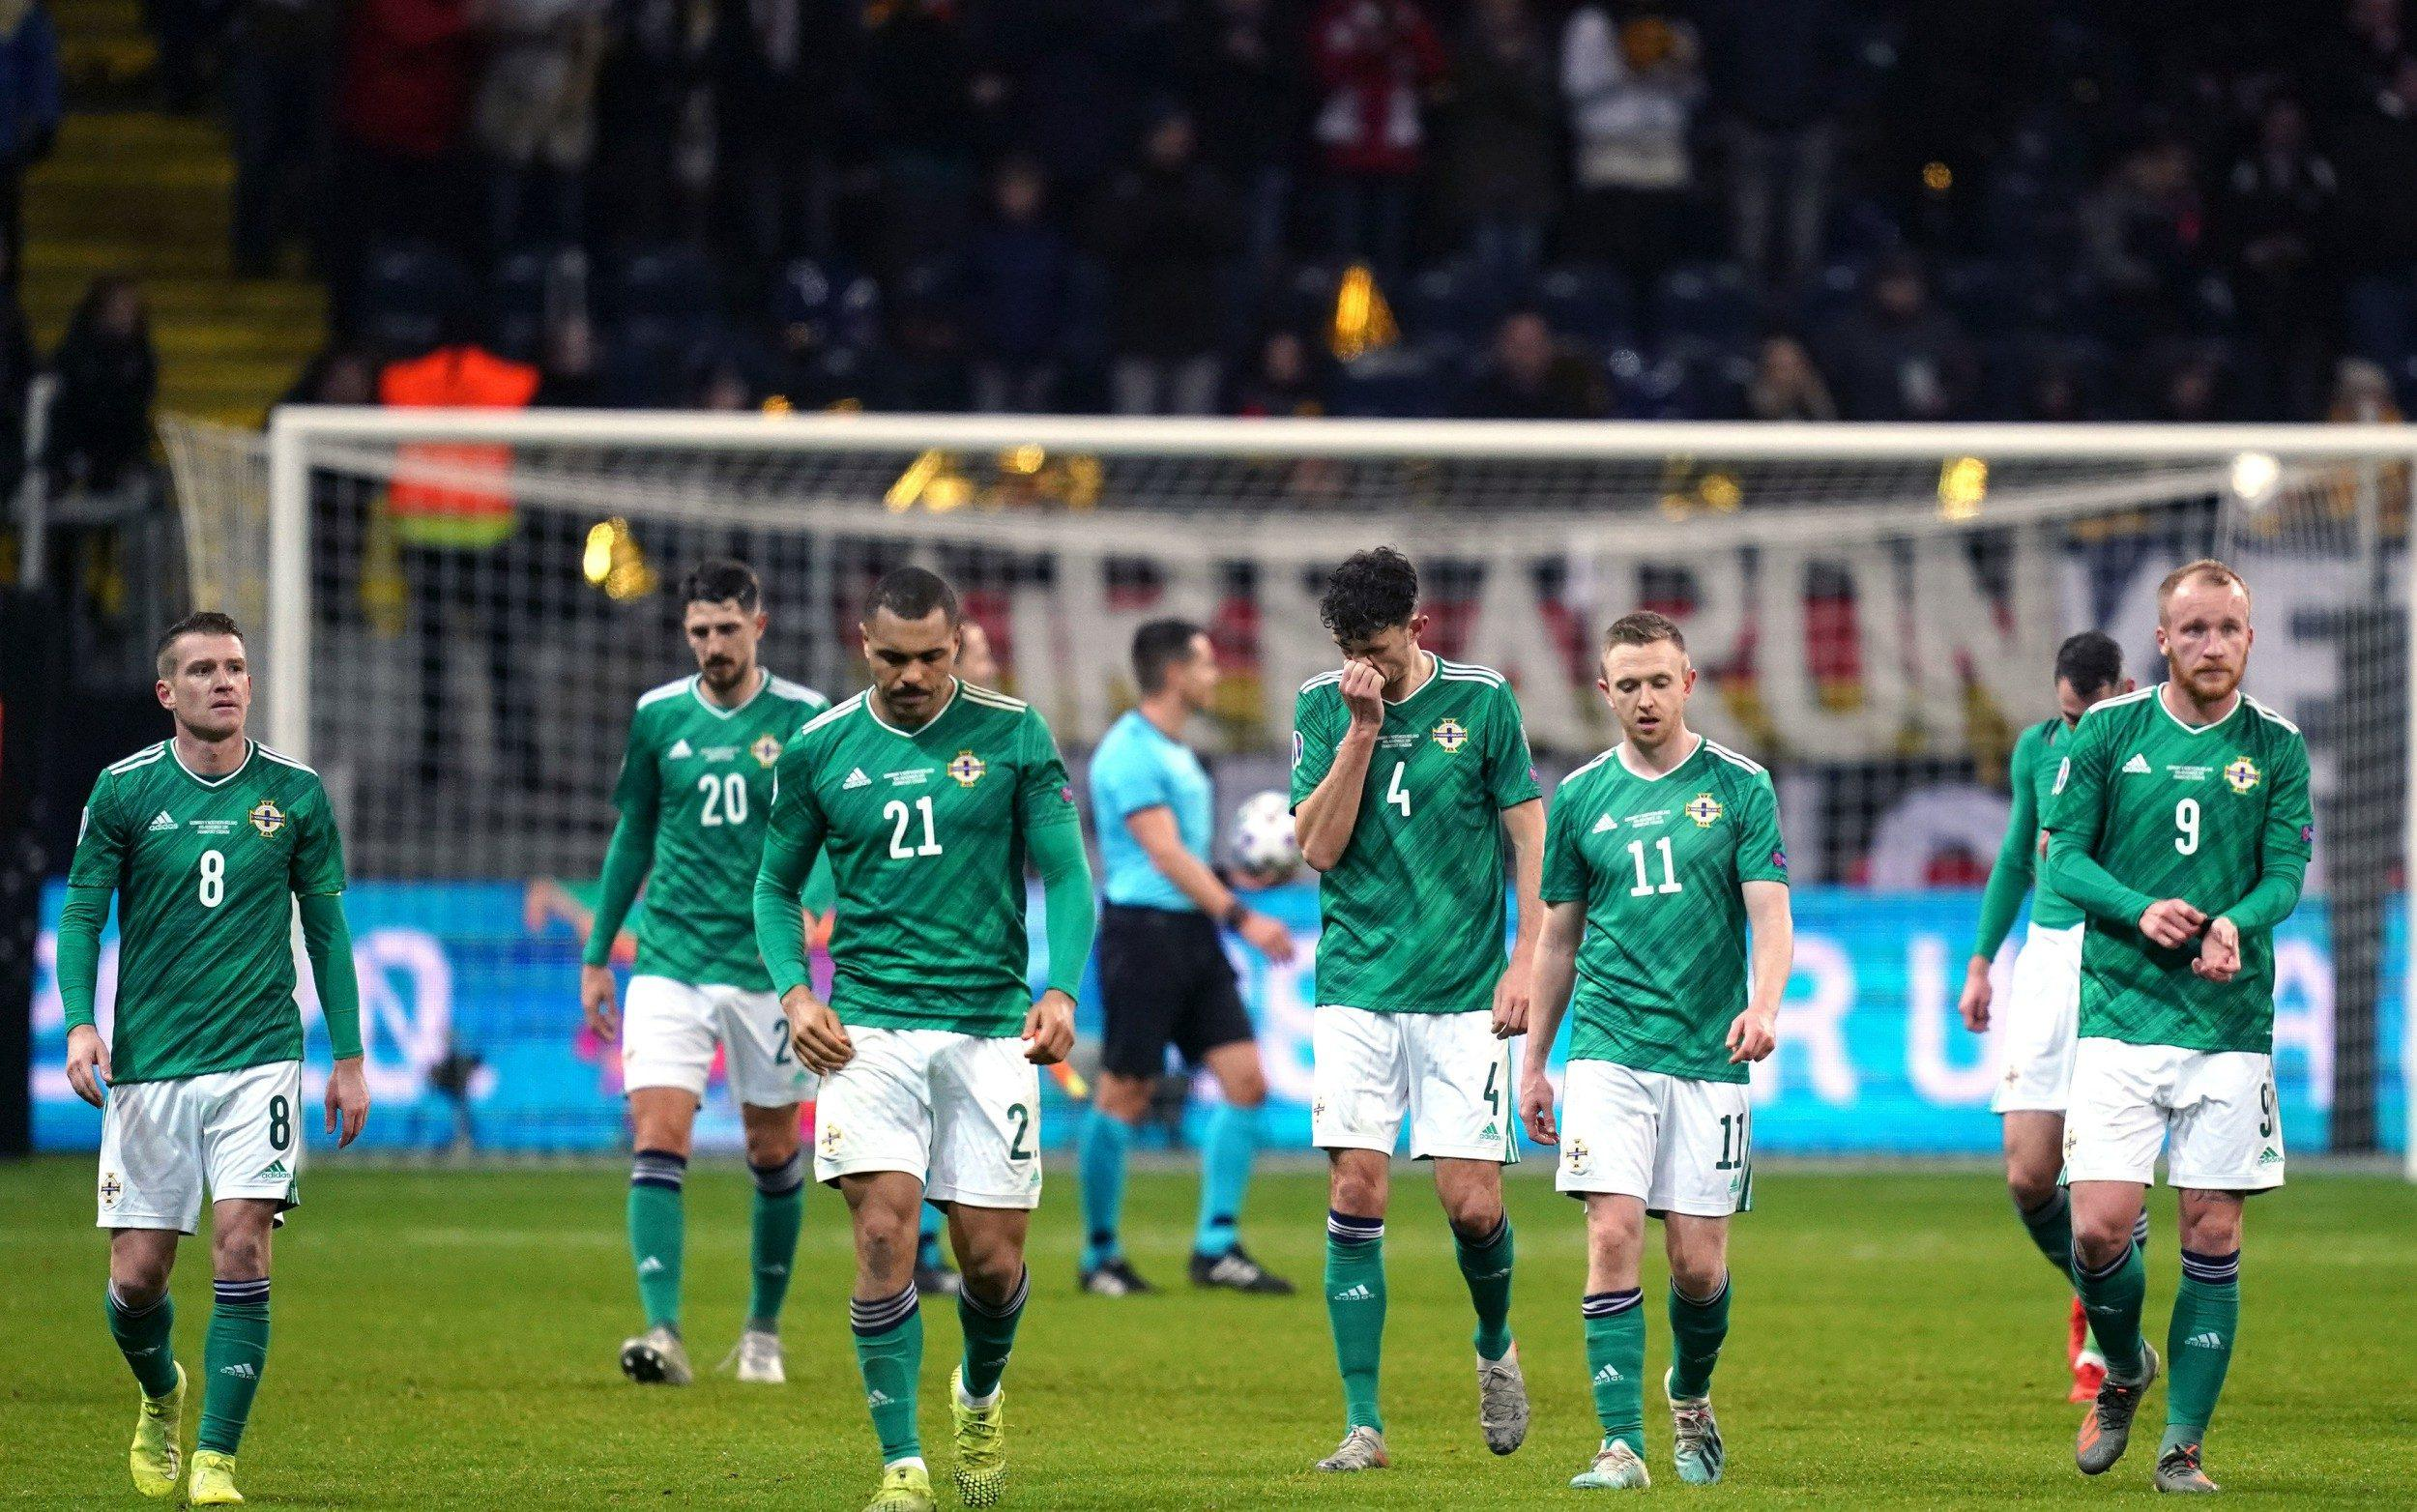 Northern Ireland face Euro 2020 play-off as they are taught a lesson by ruthless Germans